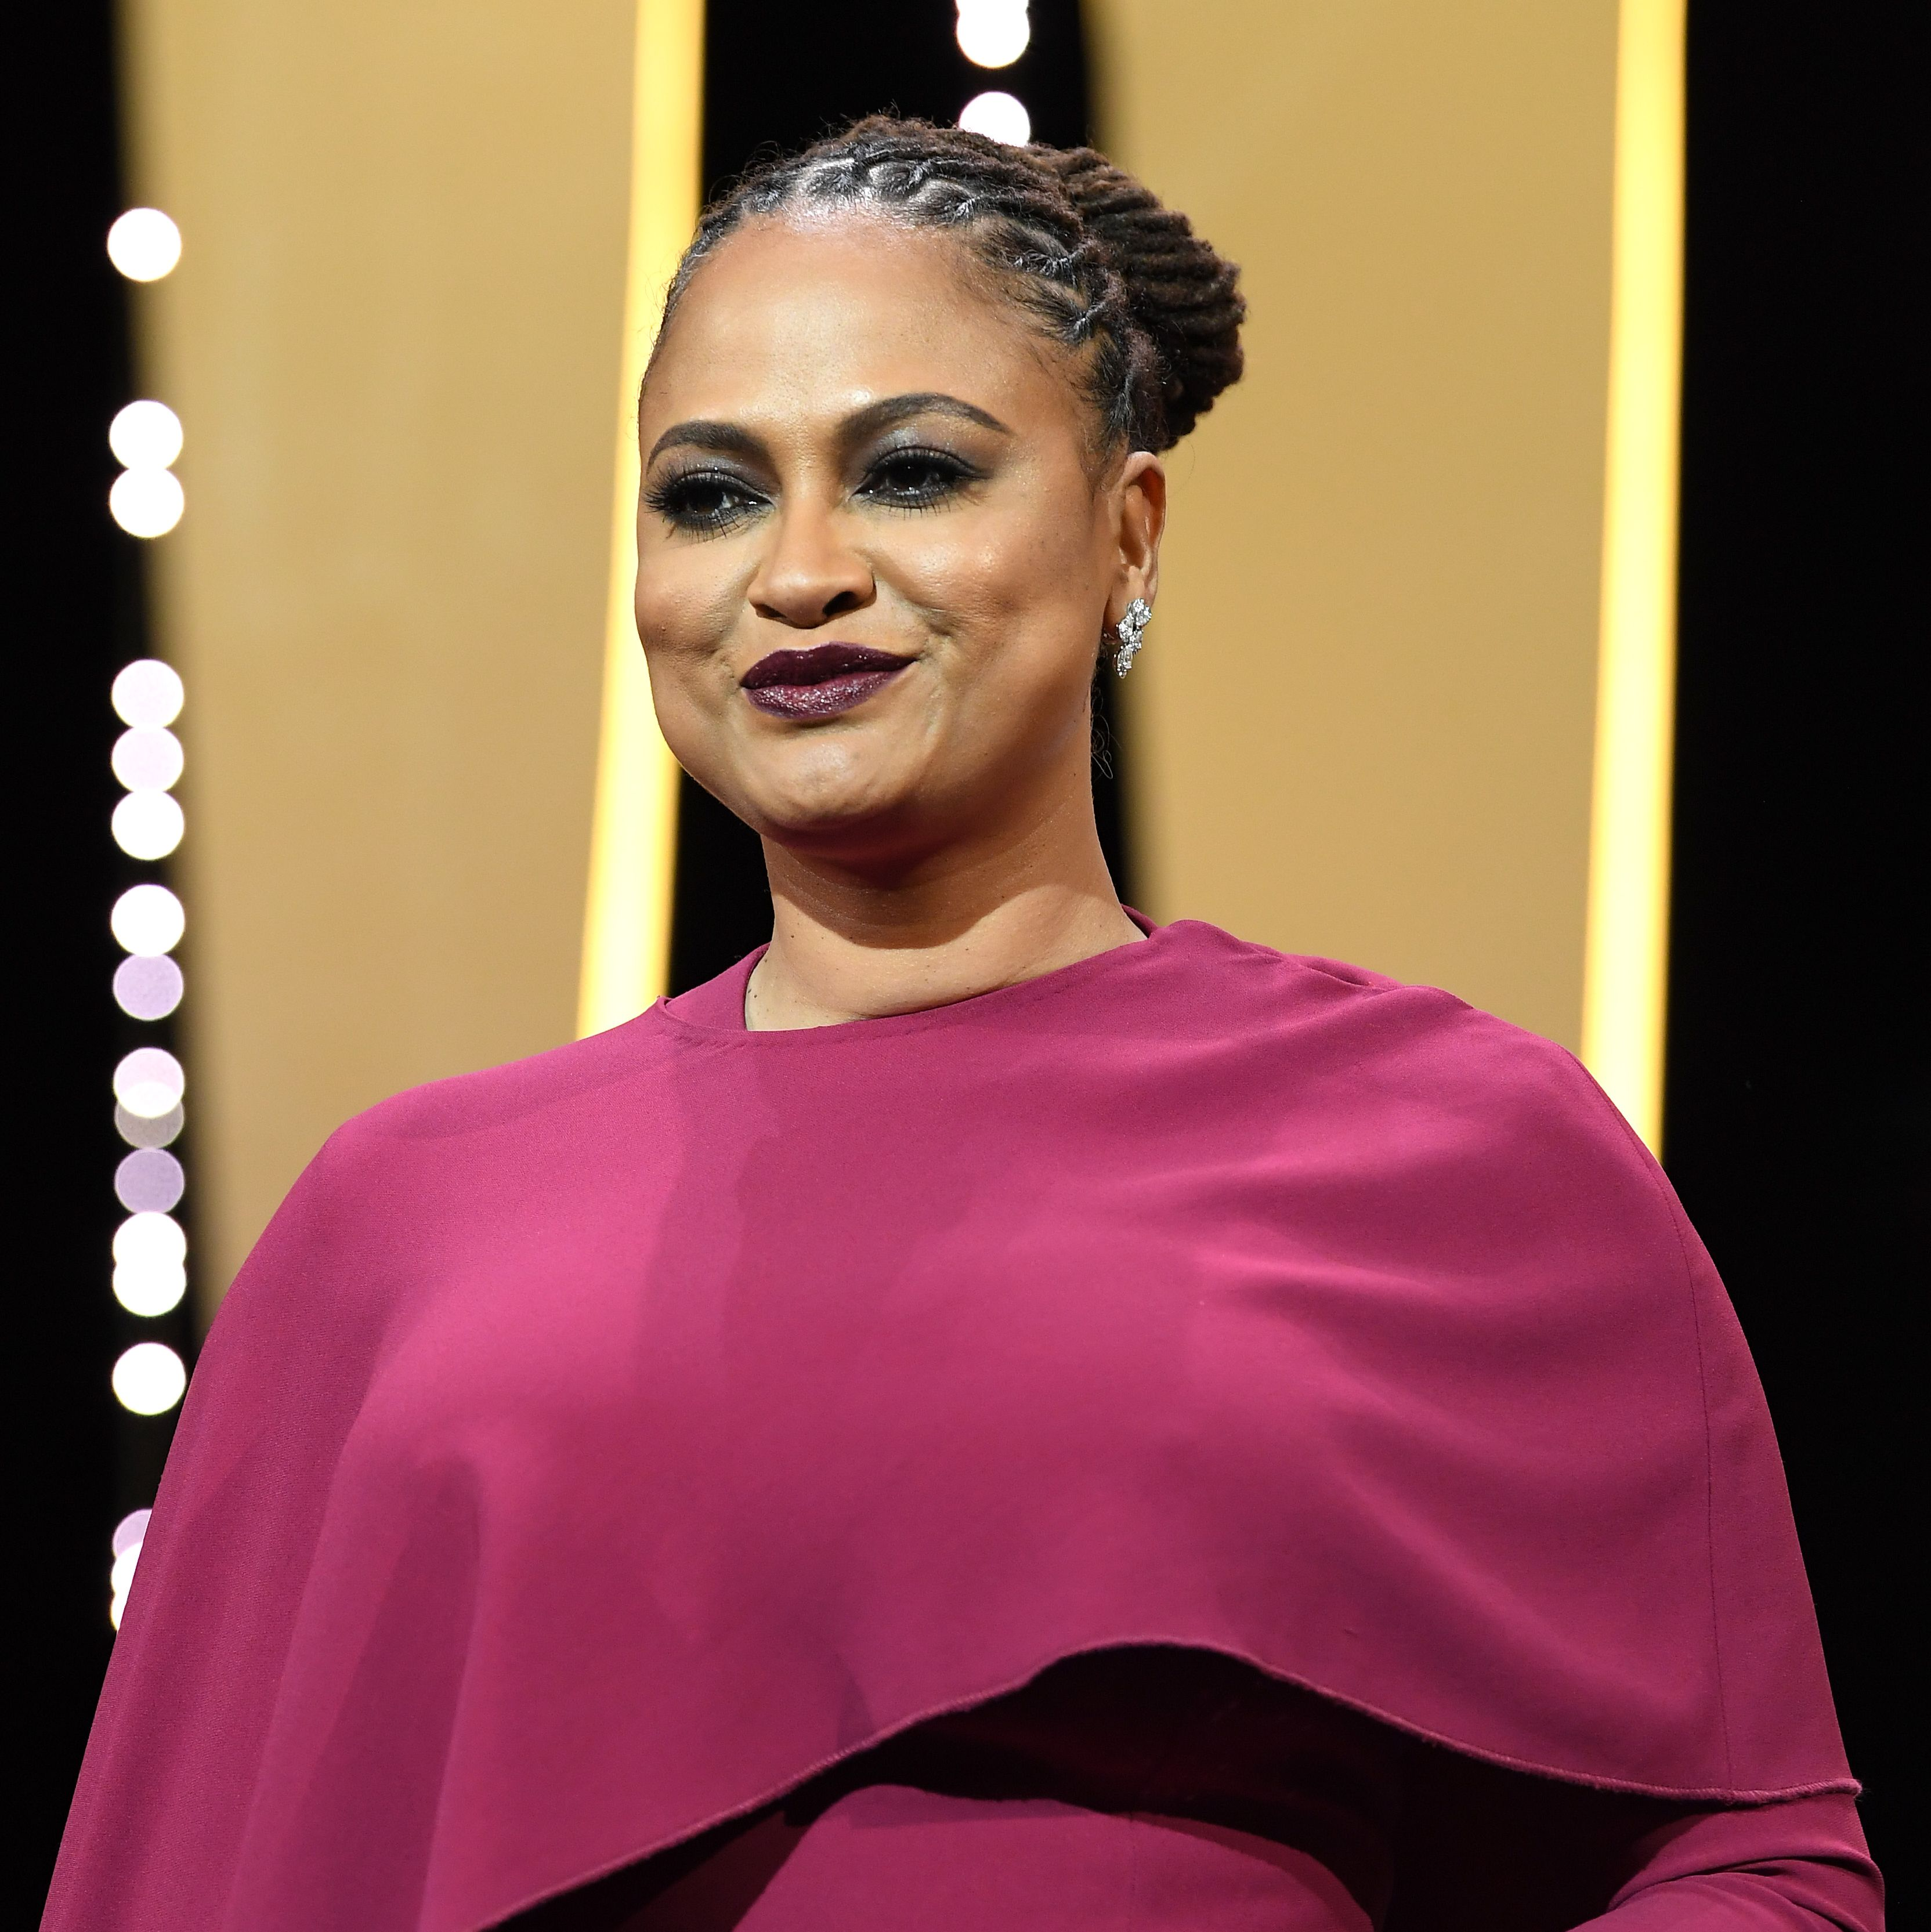 Ava DuVernay Joins Prada as the Co-Chair of Diversity and Inclusion Advisory Council